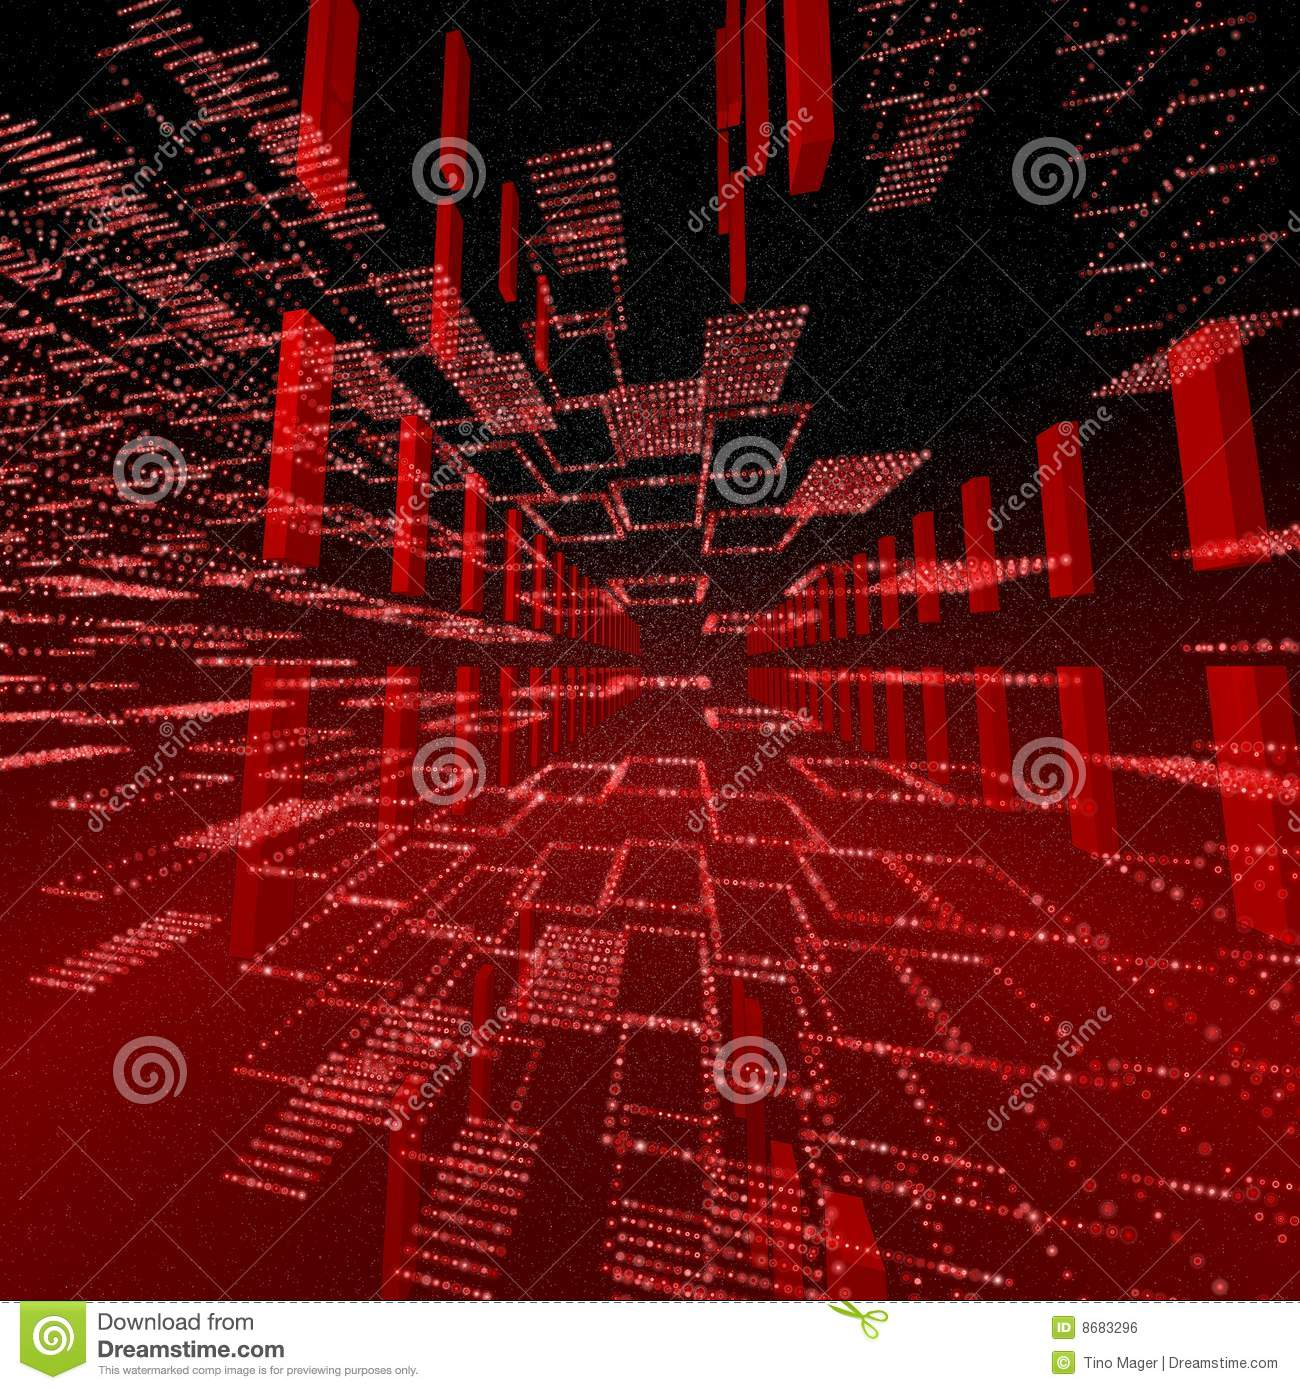 Matrix 3d Wallpaper Free Download Square Red Matrix Background Royalty Free Stock Image